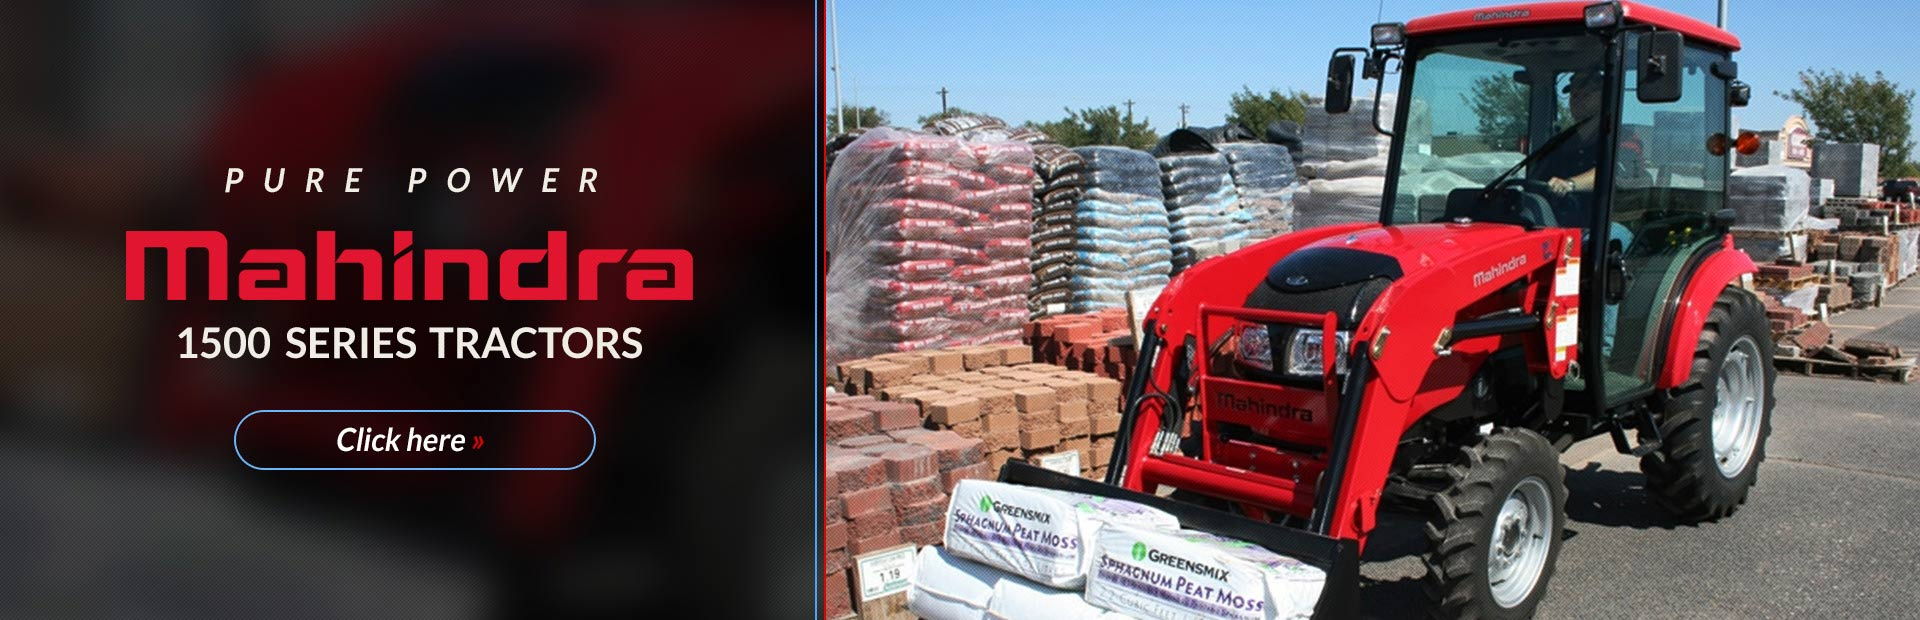 Click here to view our selection of Mahindra 1500 series tractors!